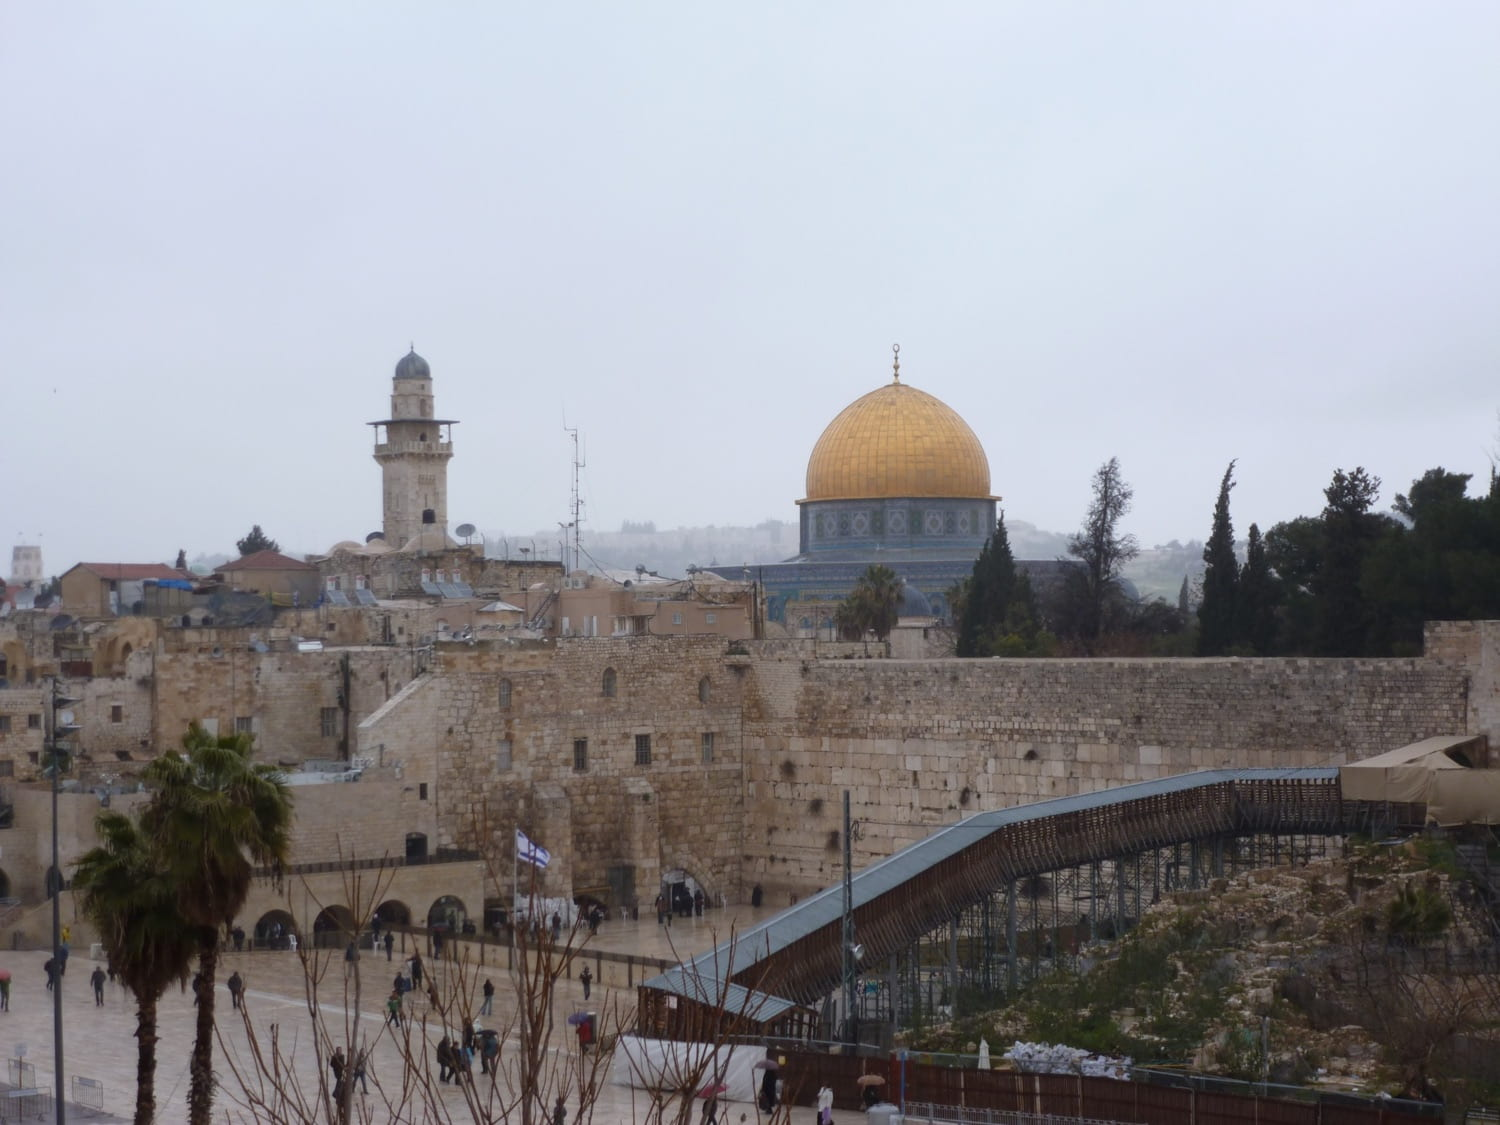 Image showing the wailing wall and al-Aqsa mosque in Jerusalem